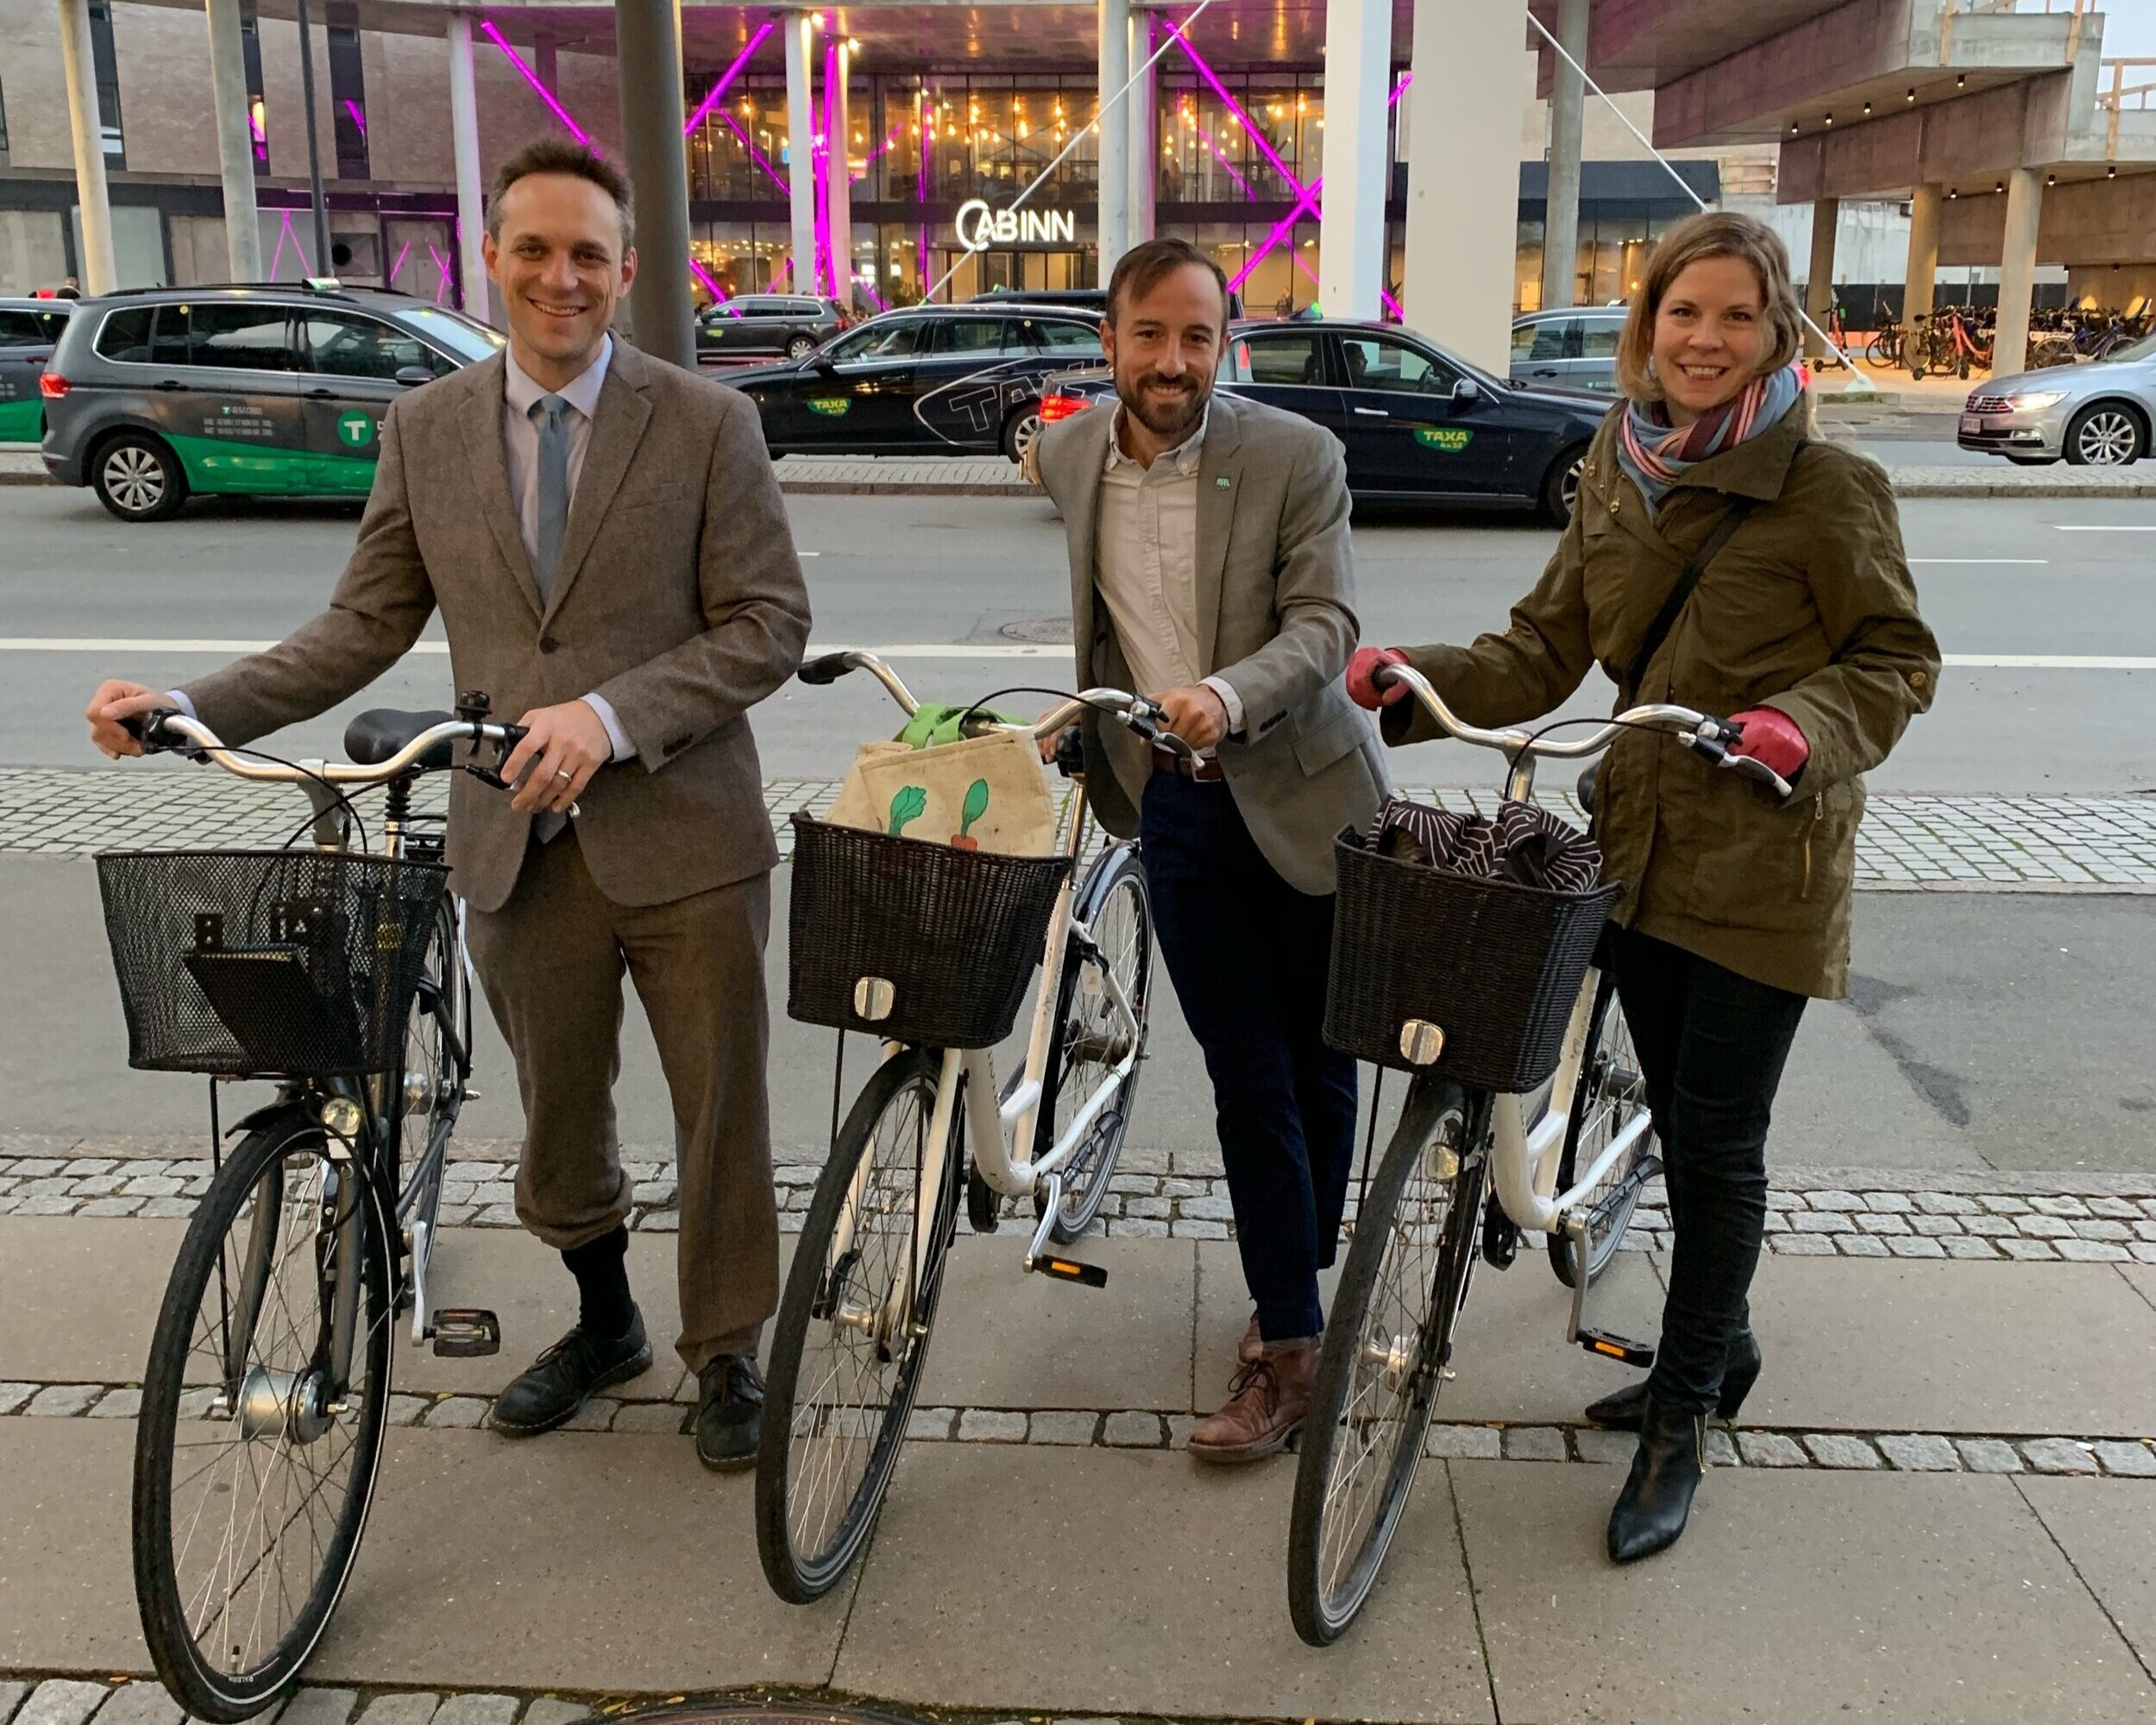 Chris Puchalsky (Policy Director at Office of Transportation, Infrastructure and Sustainability) Nic Esposito (Zero Waste And Litter Director) and Lauren Swartz (Senior Director of International Business and Global Strategy in the Commerce Department) in Copenhagen.